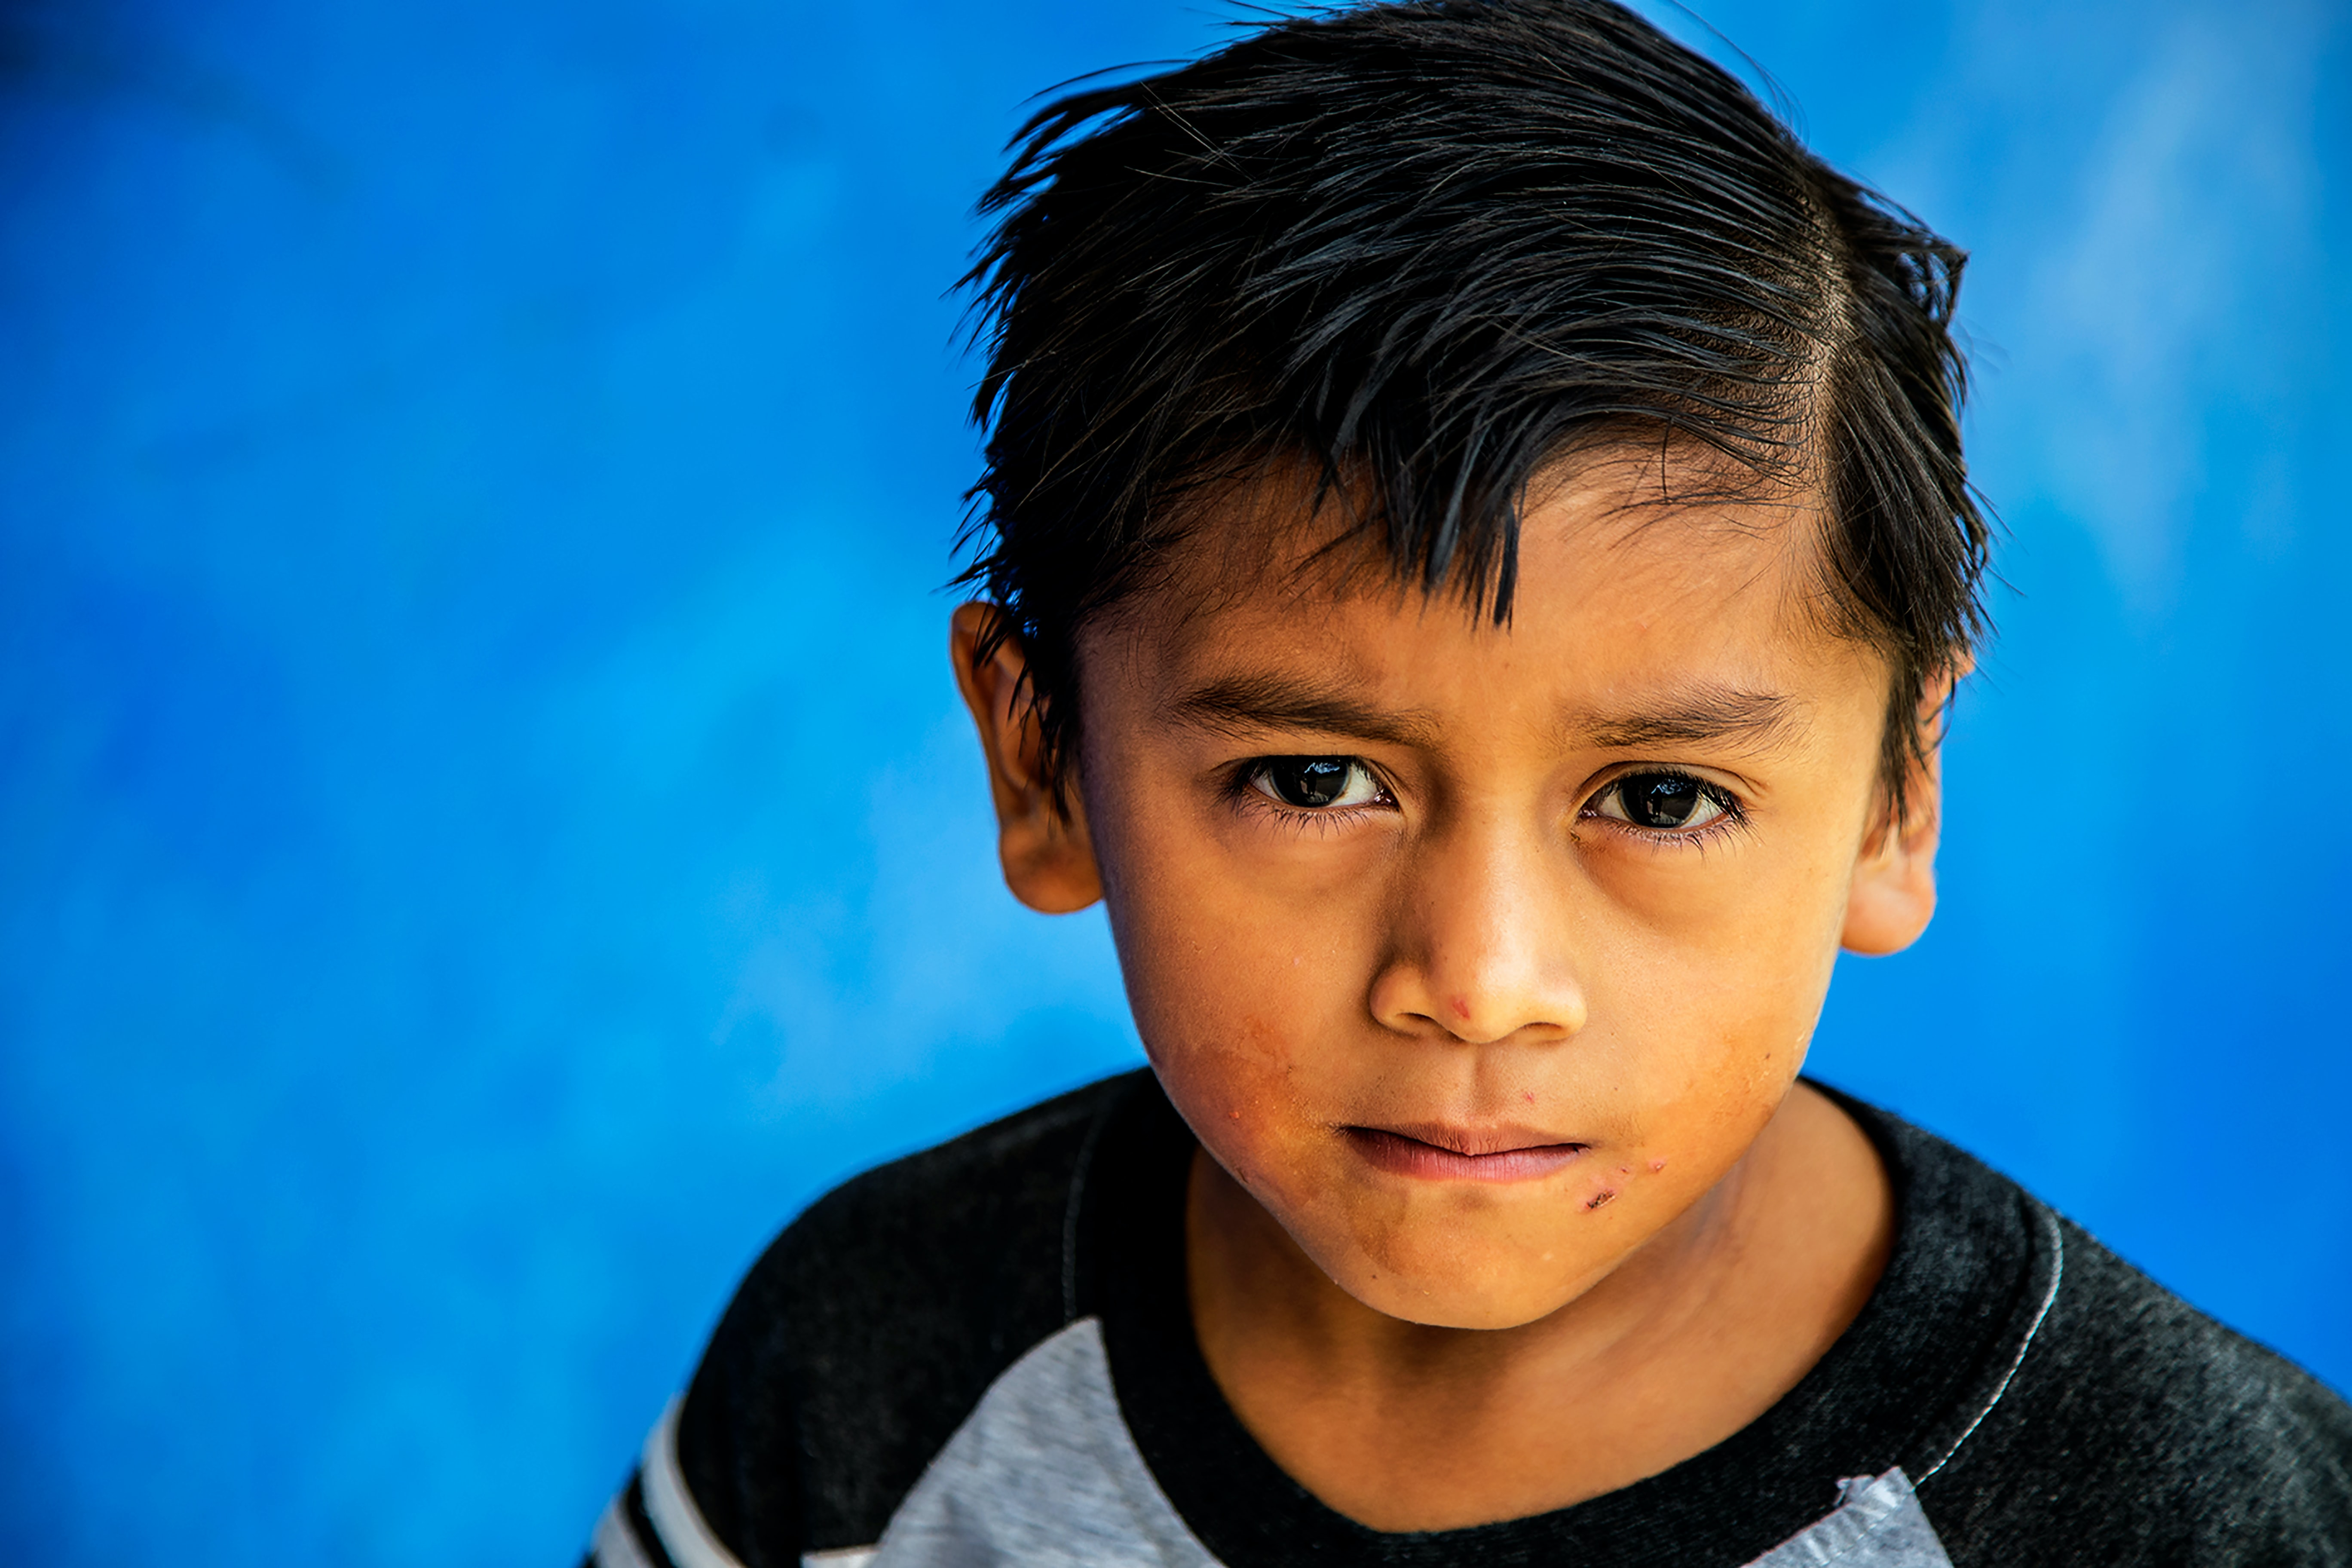 photo of boy standing against blue background